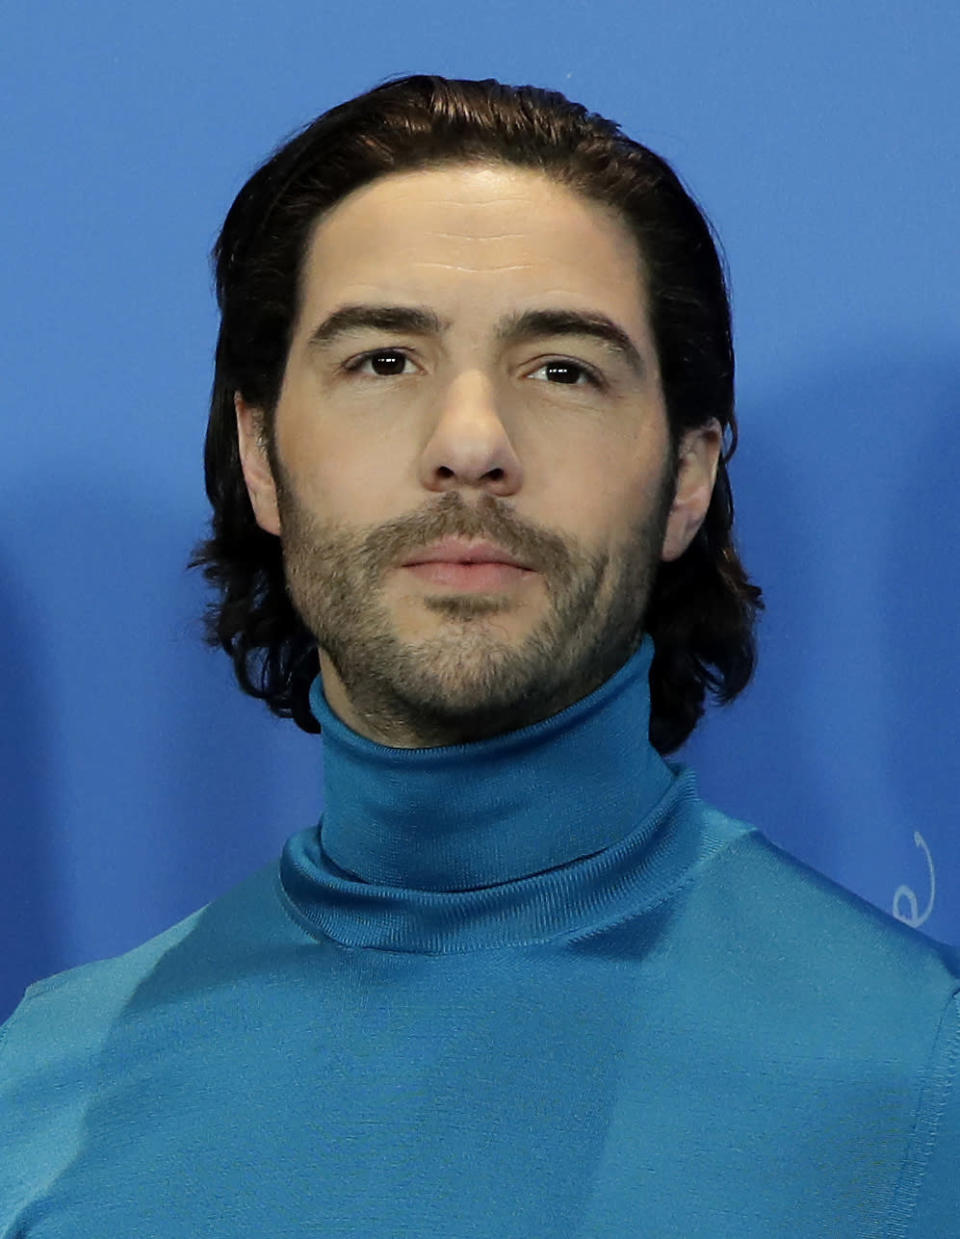 """FILE - Tahar Rahim appears during a photocall at the 2019 Berlinale Film Festival in Berlin, Germany, on Feb. 7, 2019. Rahim was nominated for a Golden Globe for for best actor in a motion picture drama for his current role in """"The Mauritanian."""" (AP Photo/Michael Sohn, File)"""